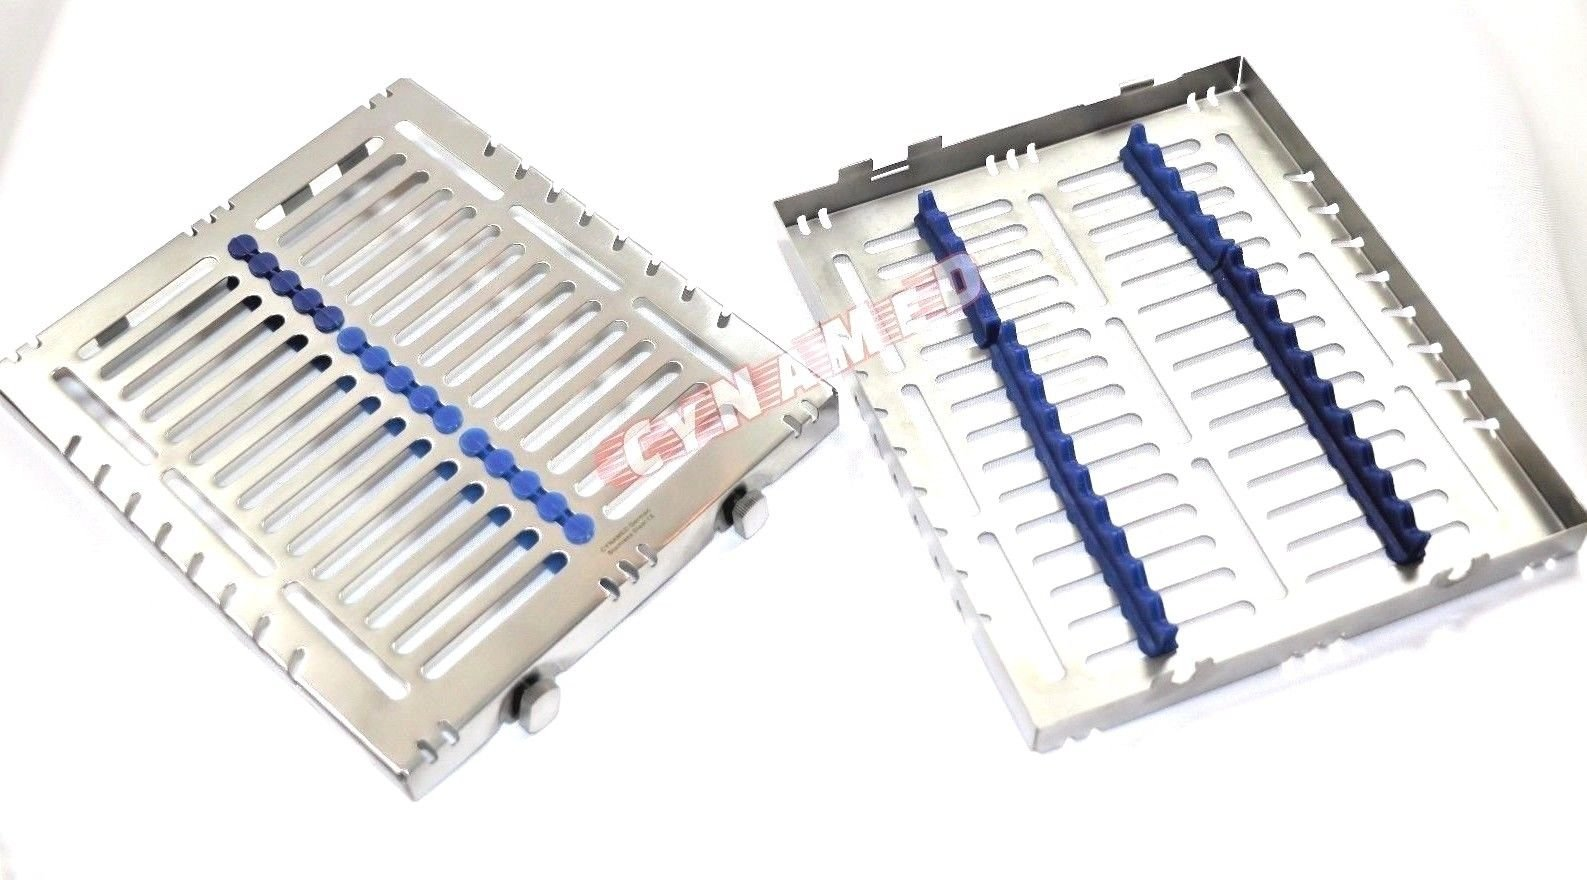 4 German Dental Autoclave Sterilization Cassette Tray for 15 Instruments 8.25X7.25X1.25'' Pink and Blue CYNAMED by CYNAMED (Image #5)